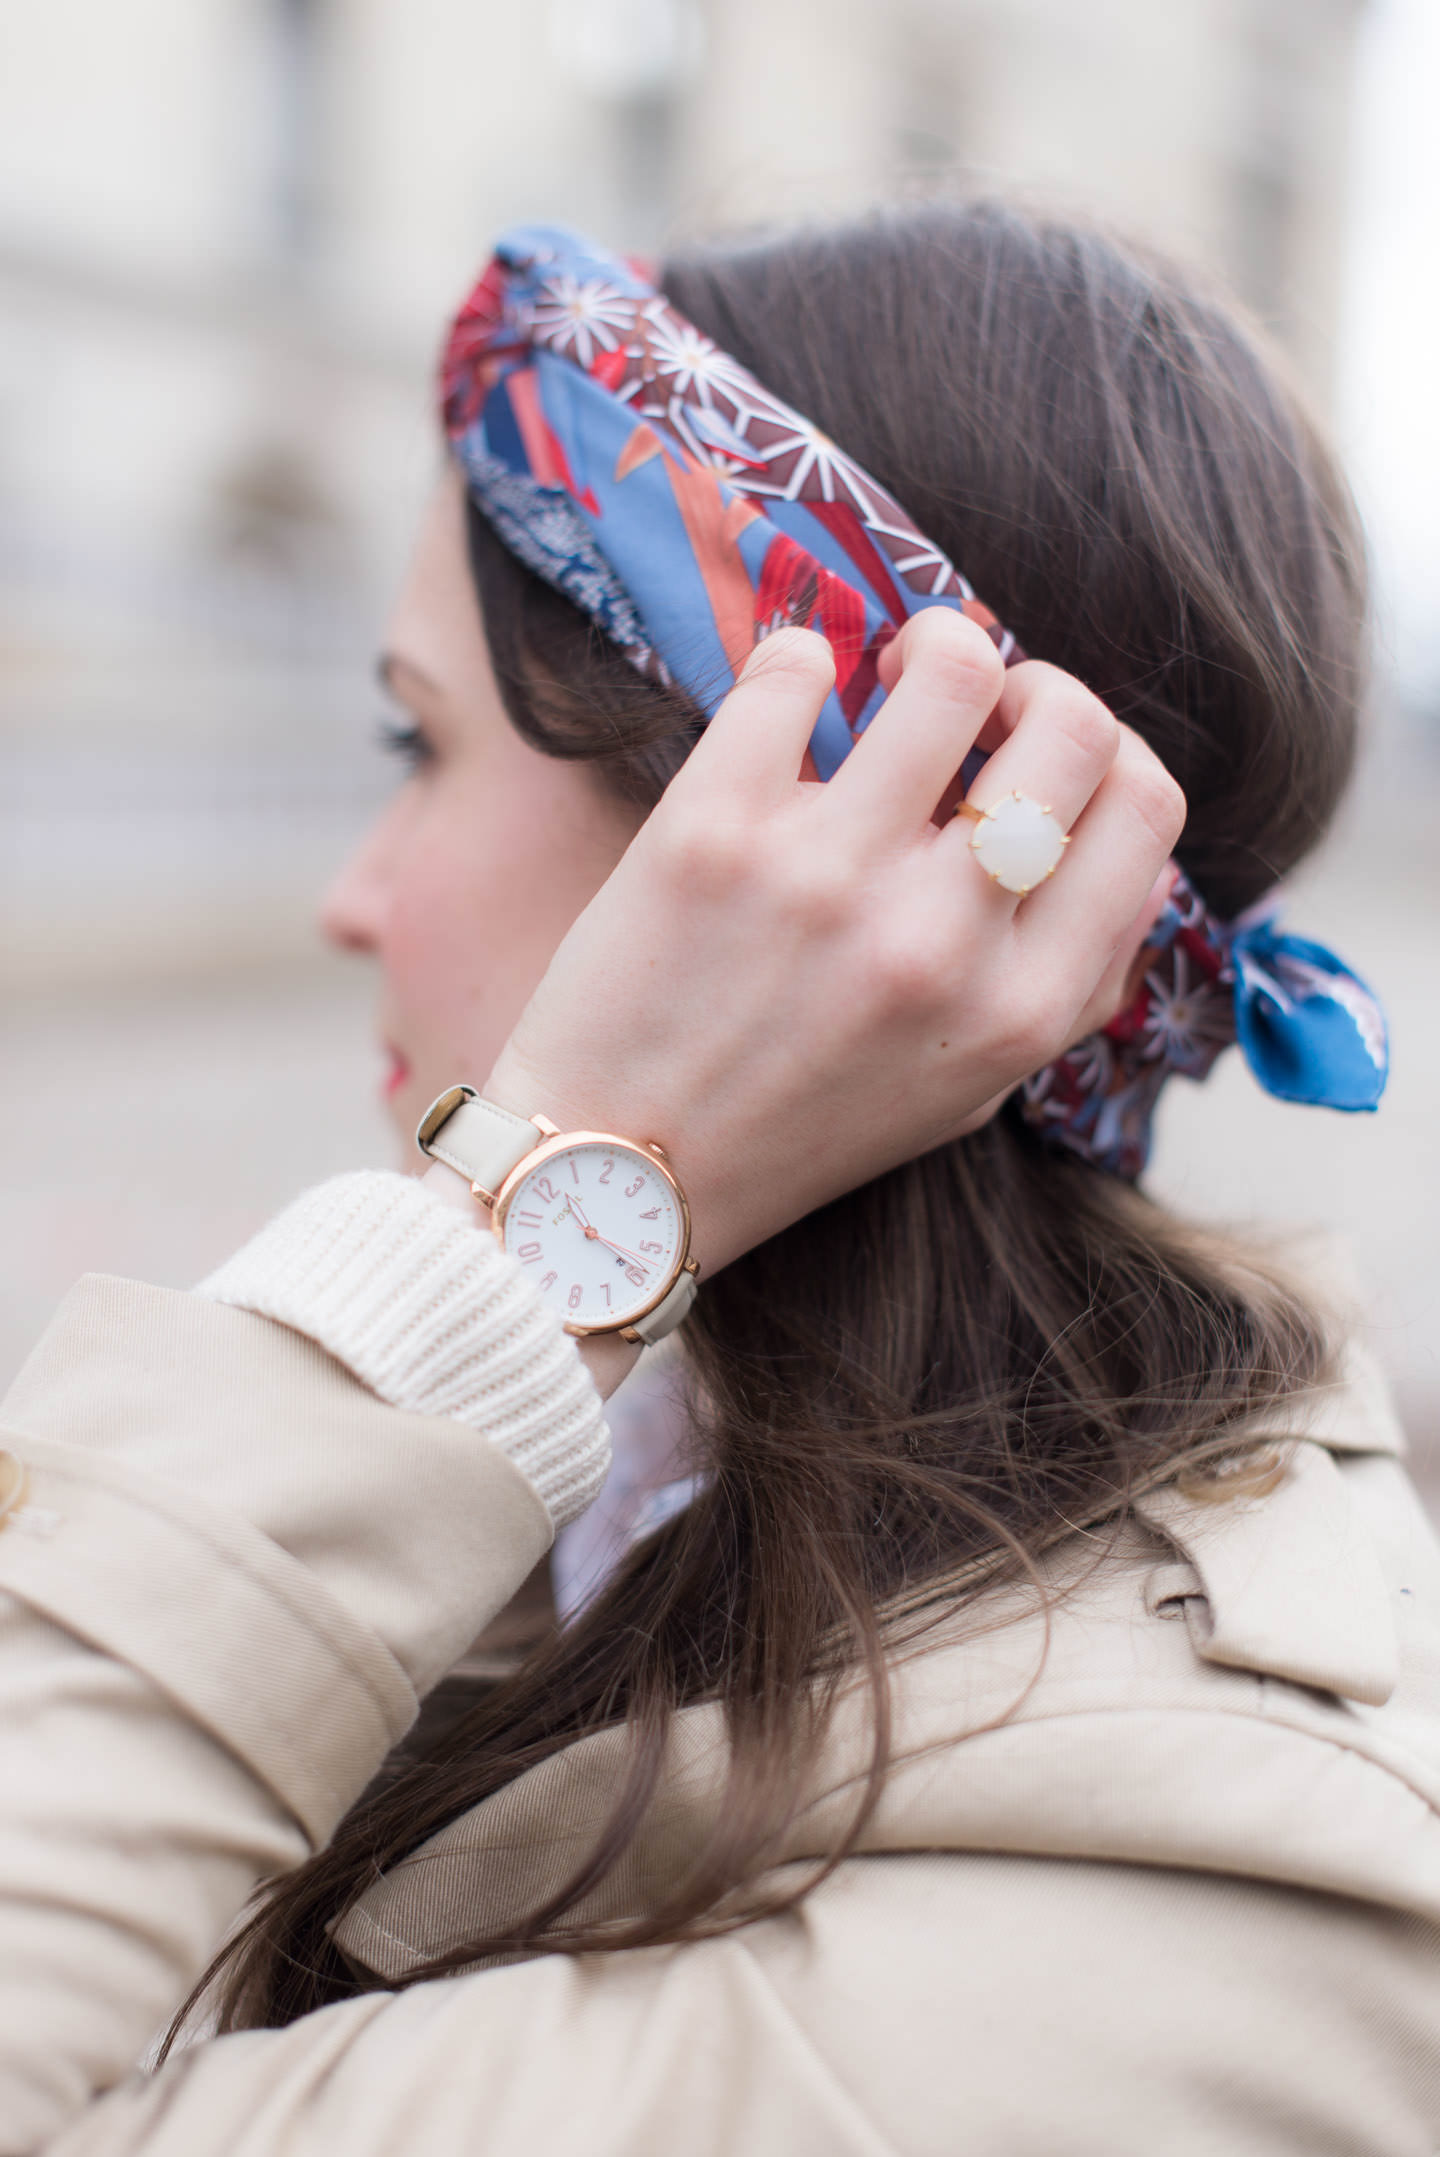 Blog-Mode-And-The-City-Looks-Cadeaux-Personnalises-Fossil05-5